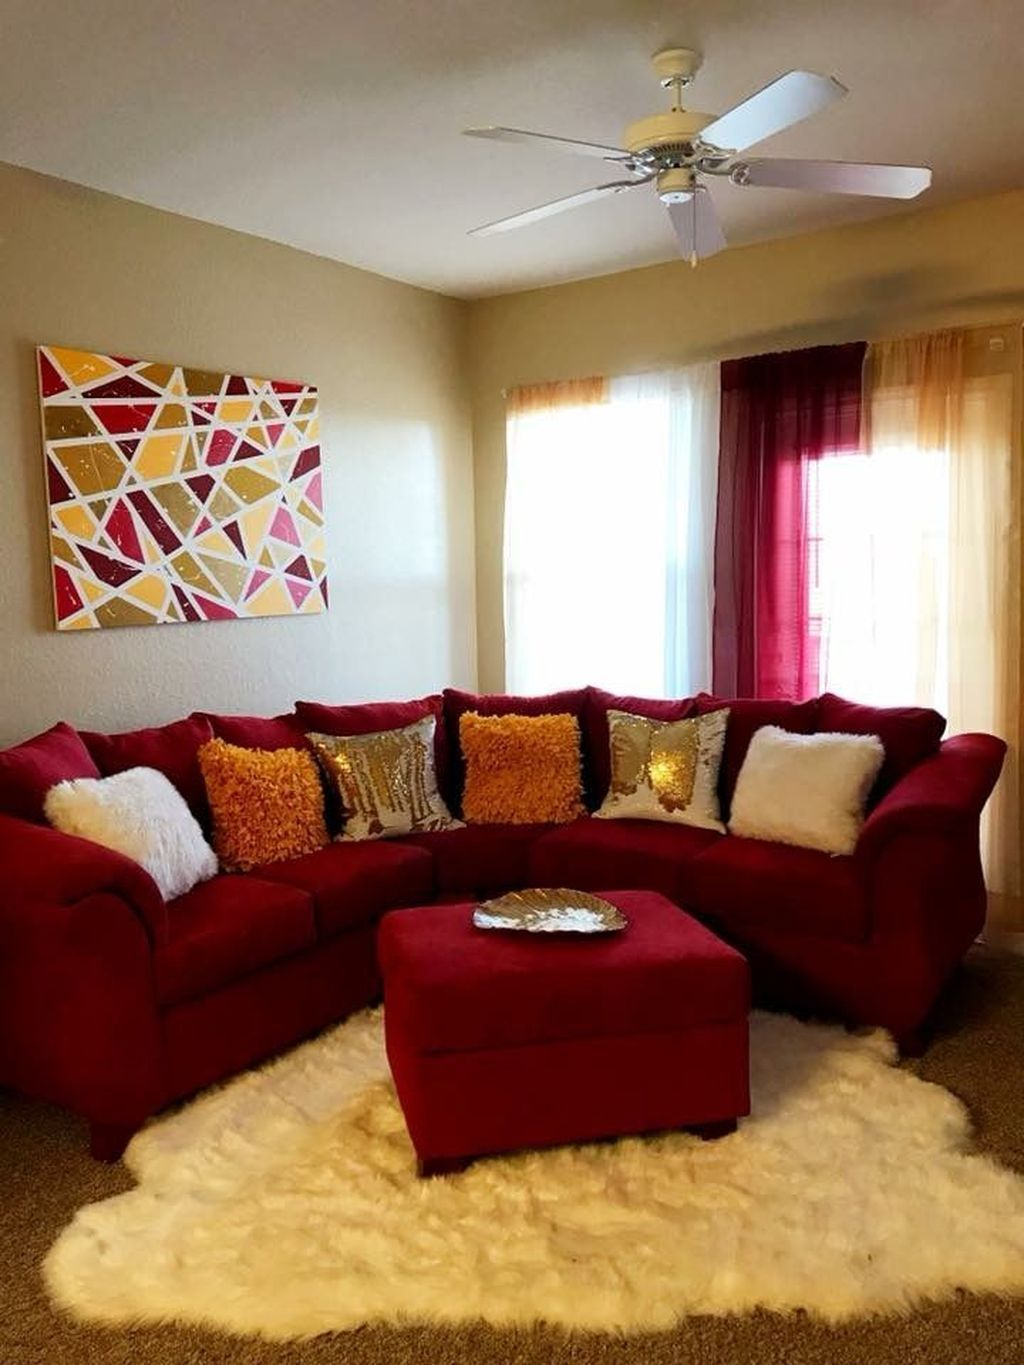 Pin By Storage Furniture Living Room On Furniture A Living Rooms Red Living Room Decor Red Couch Living Room Living Room Decor Apartment #red #and #tan #living #room